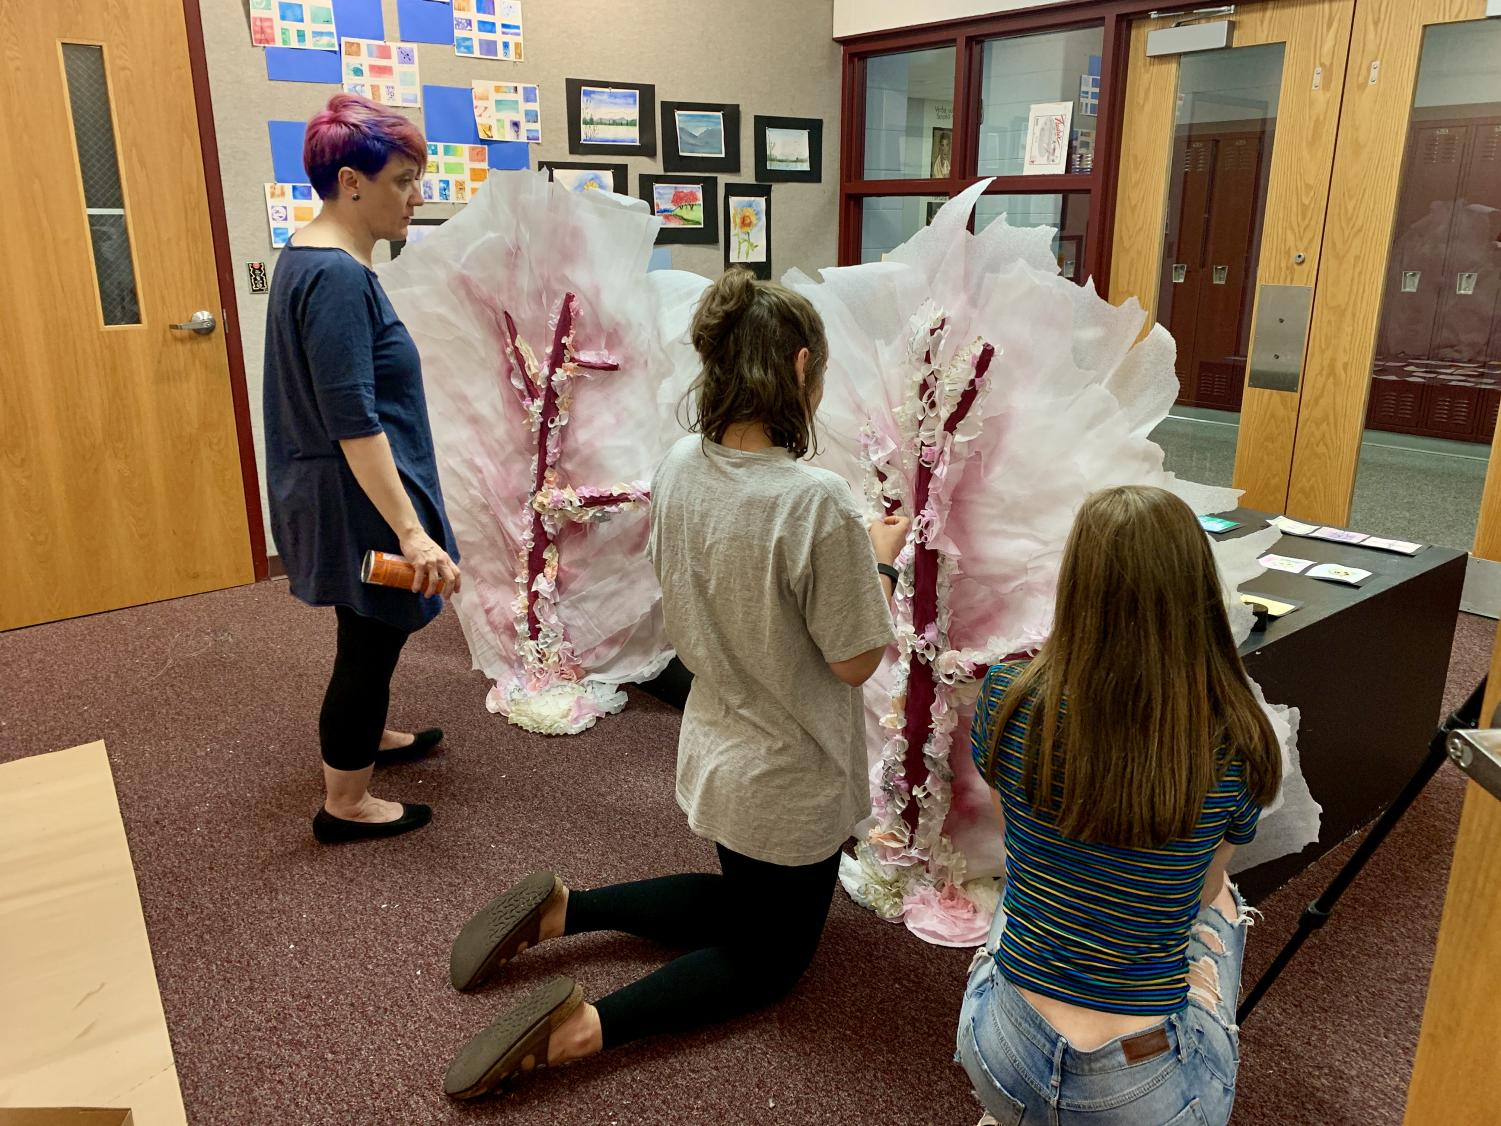 Mrs. Victoria May looks on as prom committee members work on designing decorations in the art gallery this week.